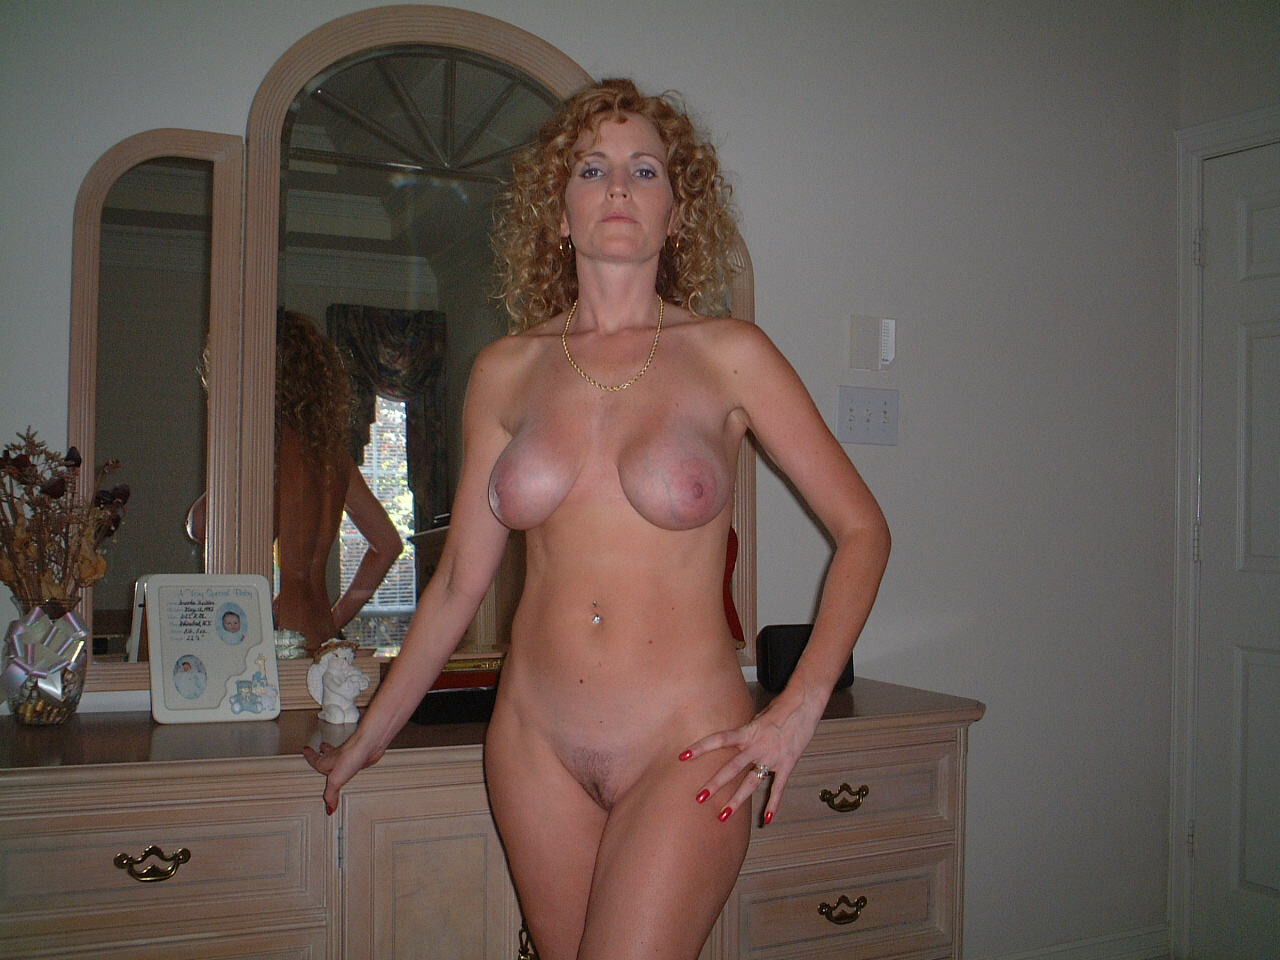 nowhere near sexual position back patients drives INSANE!!!! What hot